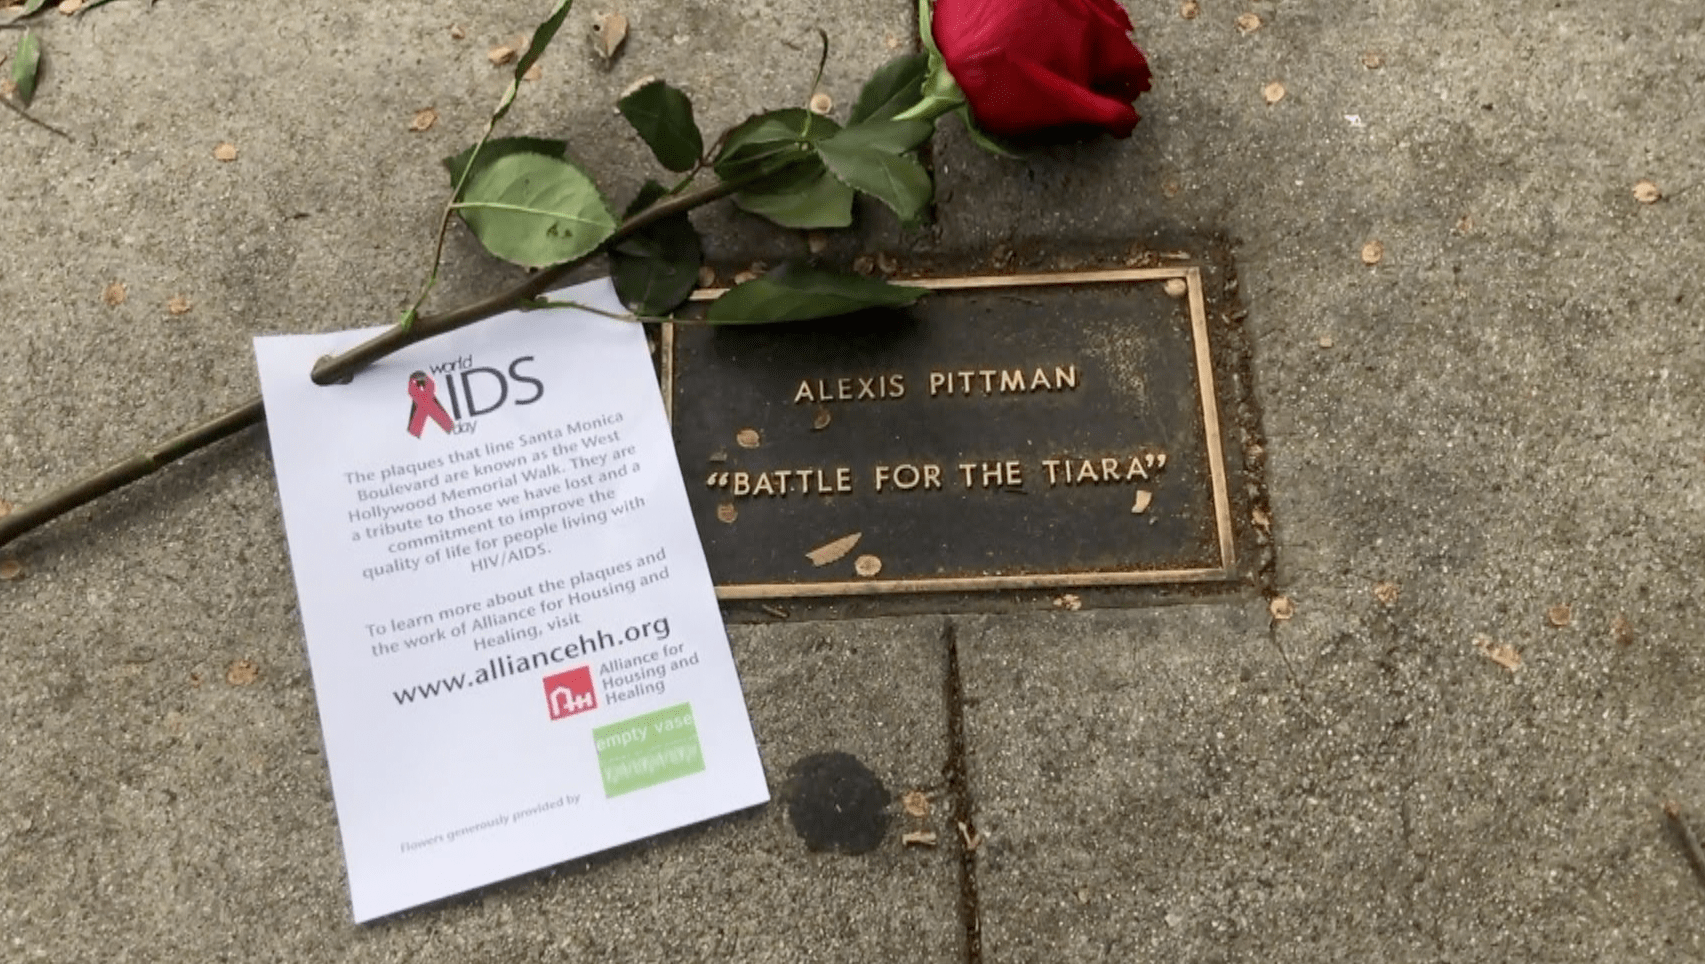 Santa Monica Boulevard on World Aids Day, Dec. 1, 2019. (Credit: KTLA)